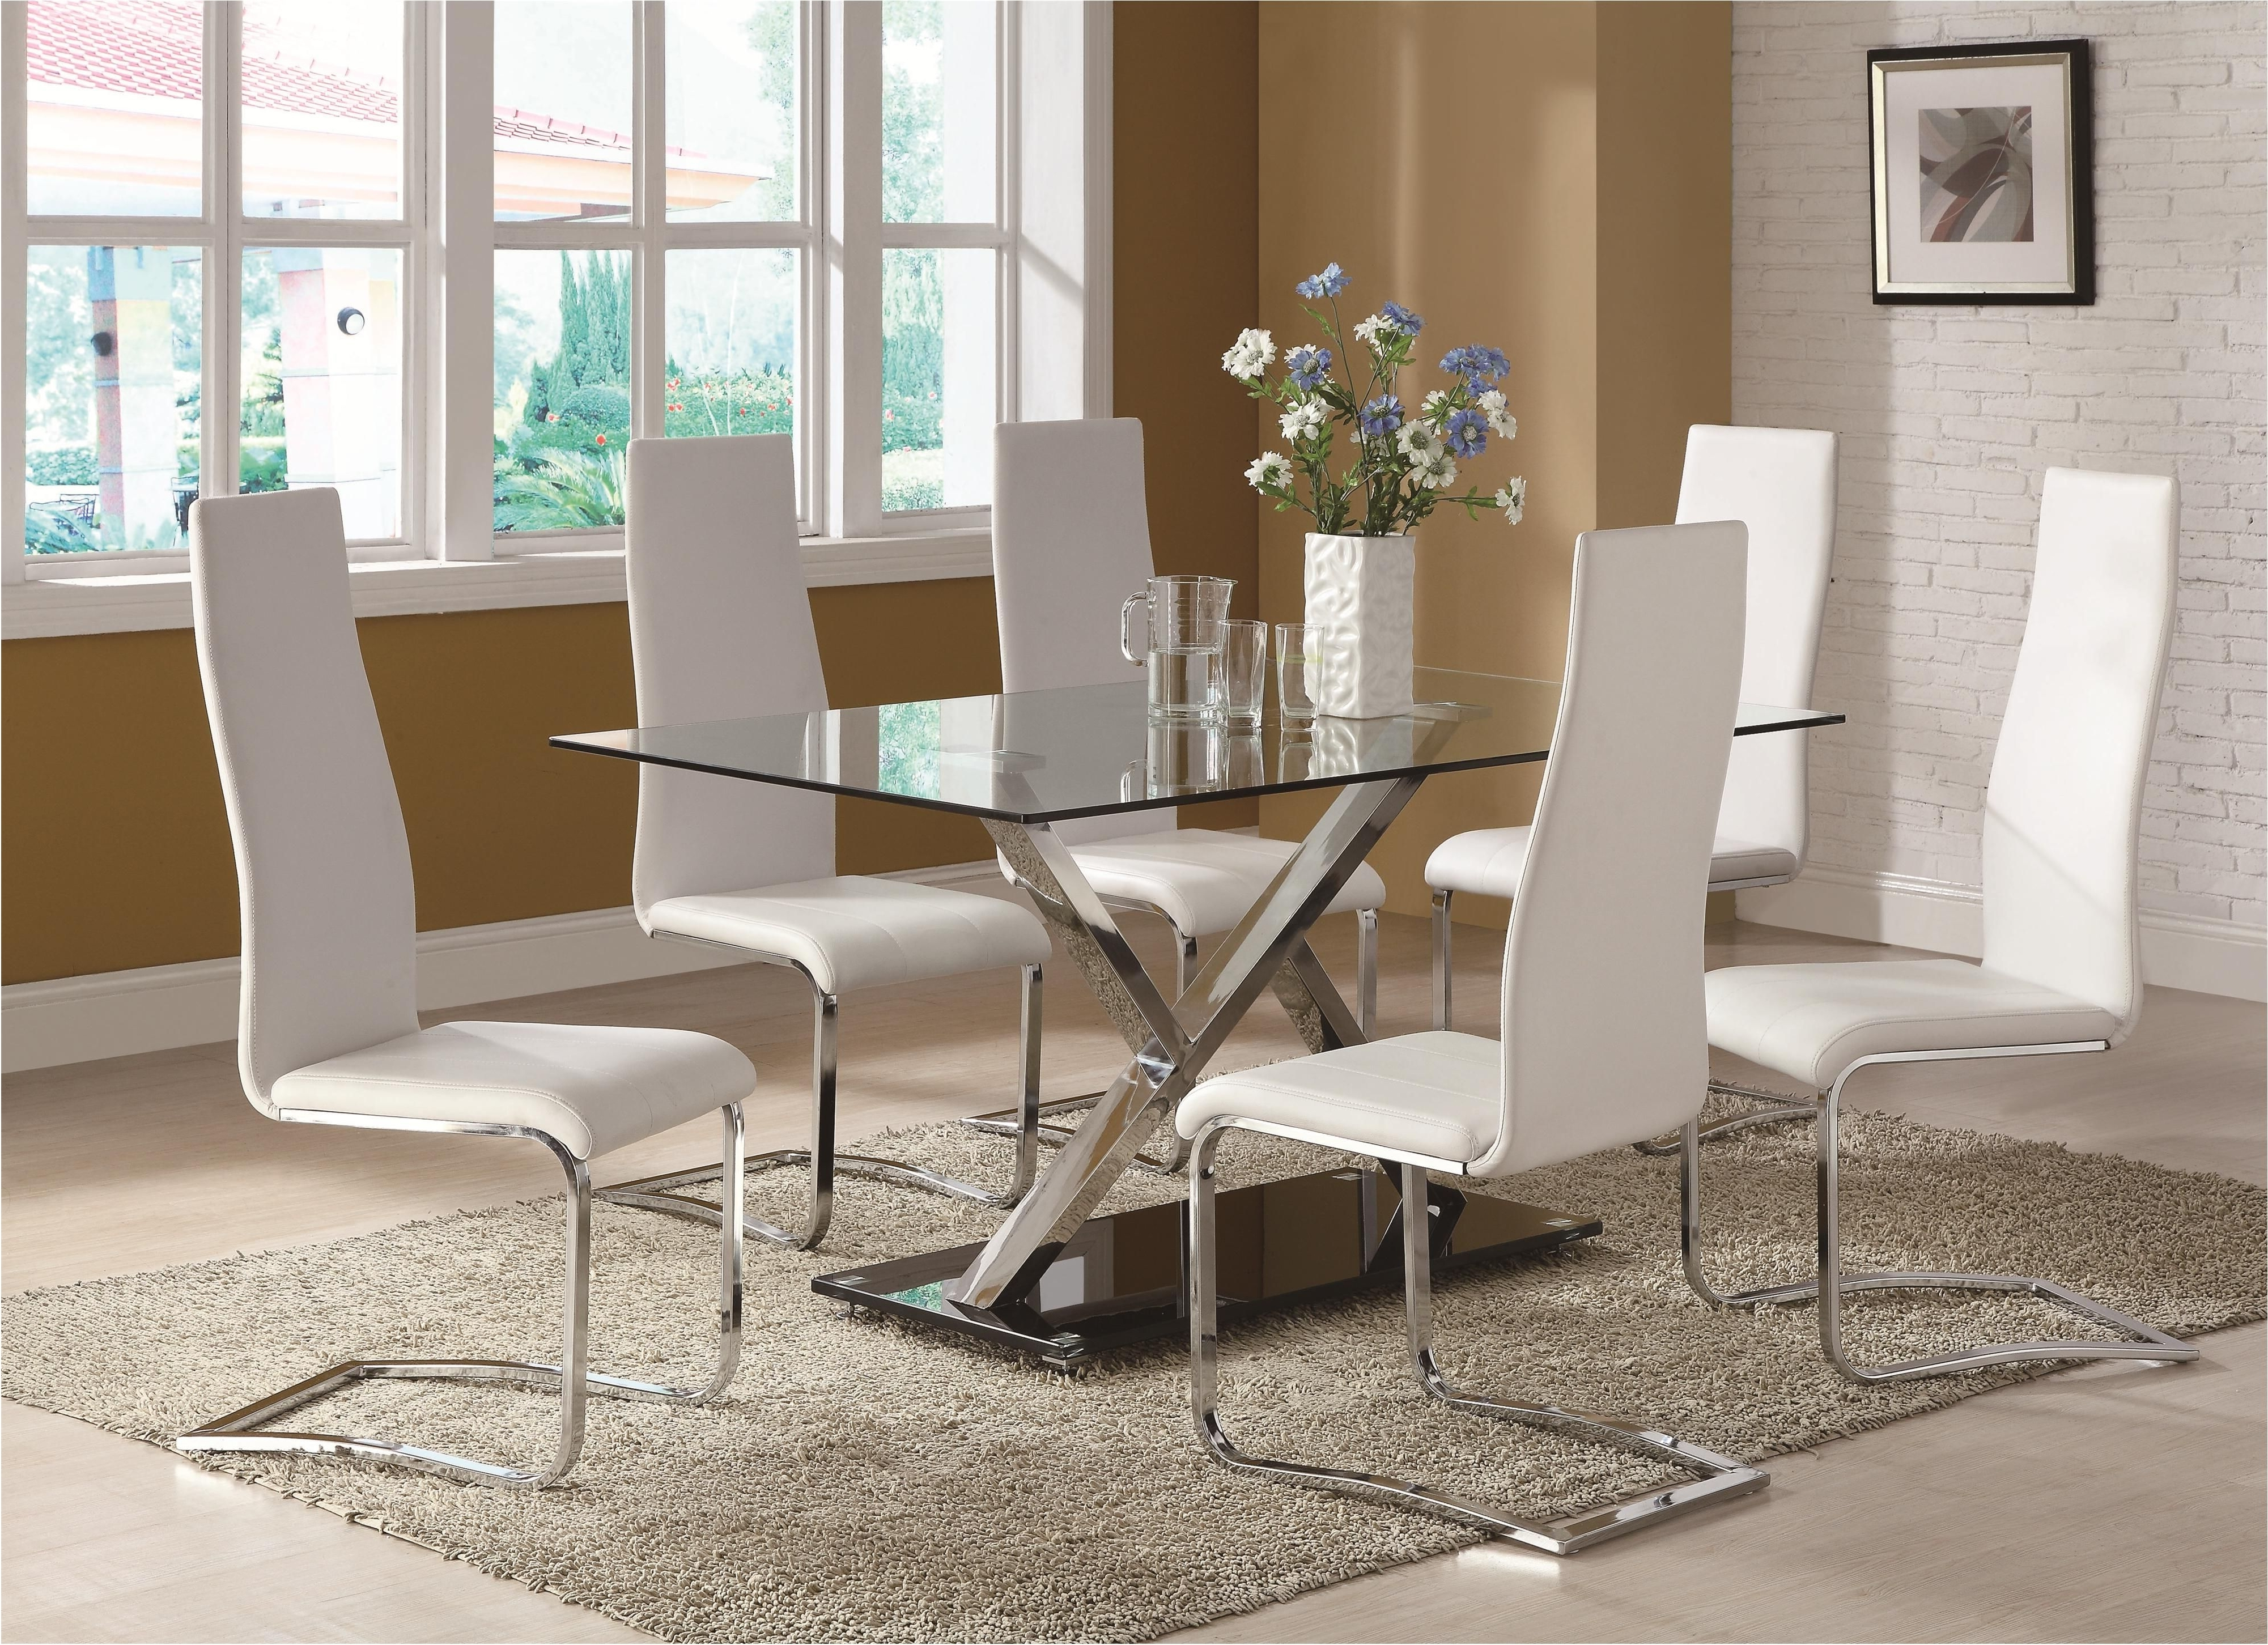 Modern Dining Room Sets For Well Liked Nice Breathtaking Modern Glass Dining Table Set 2 Room Sets Be Black (View 13 of 25)